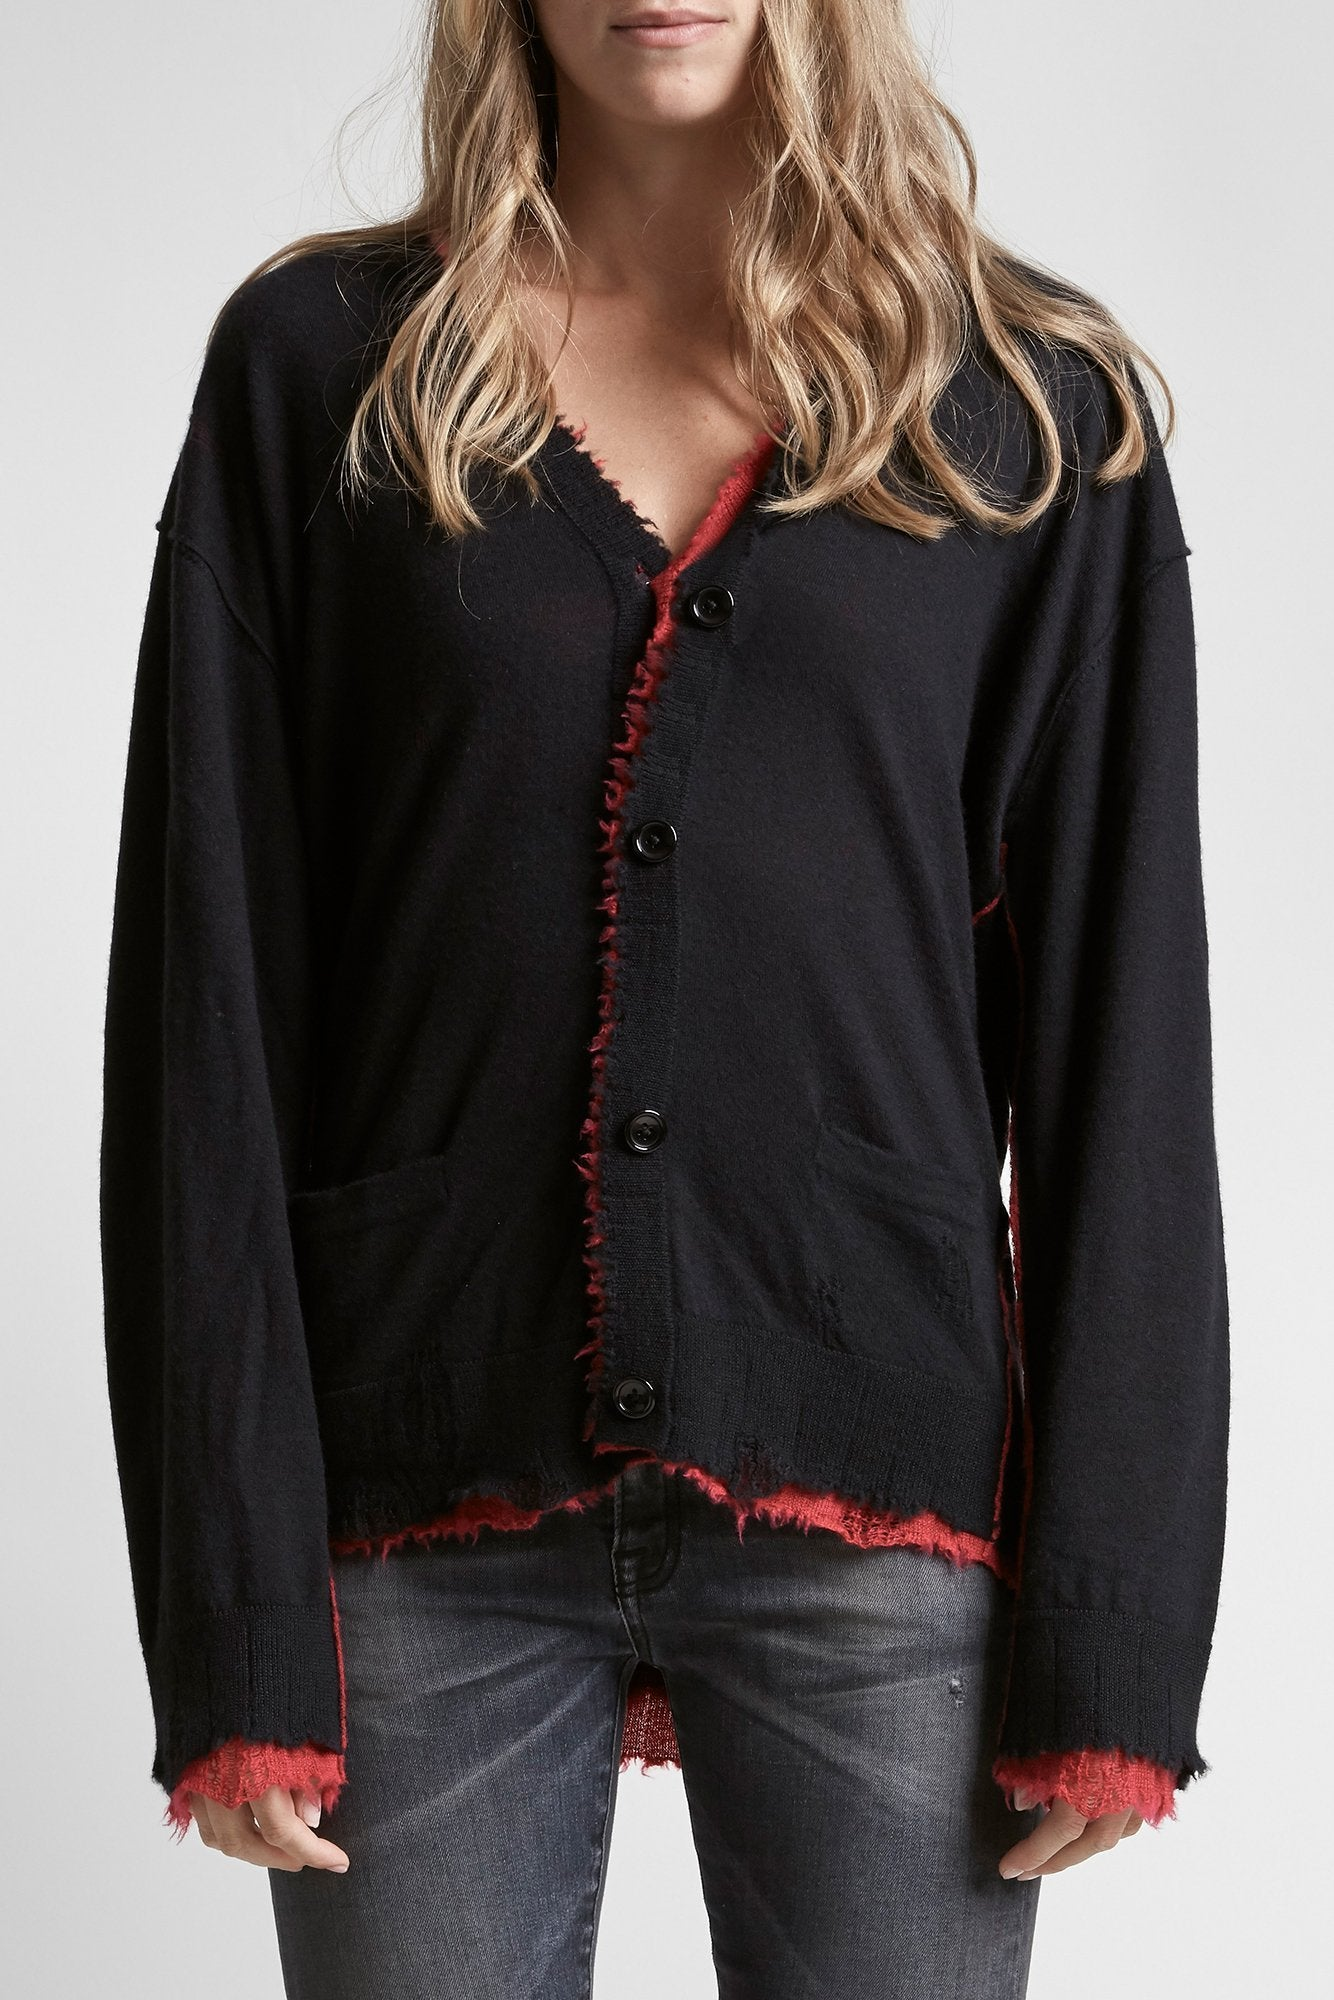 Reversible Cardigan - Black/Red